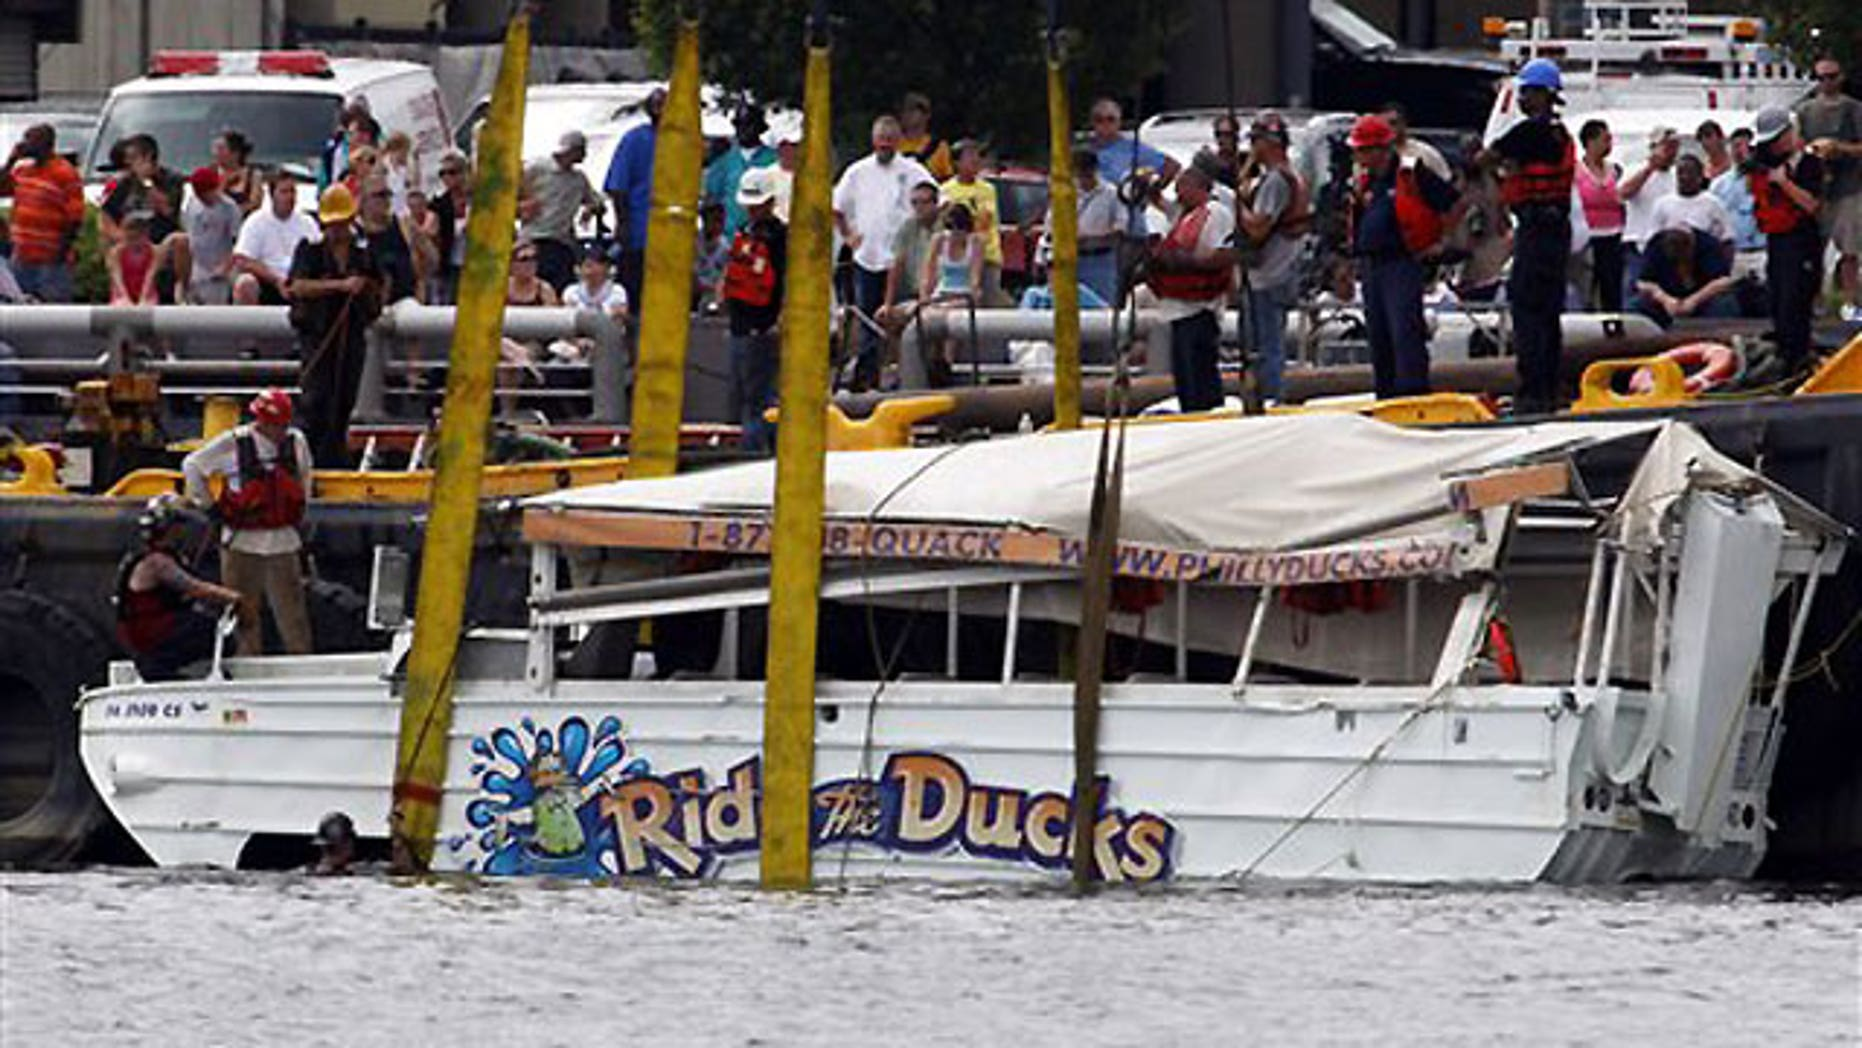 July 9: An amphibious craft is salvaged from the Delaware River in Philadelphia.